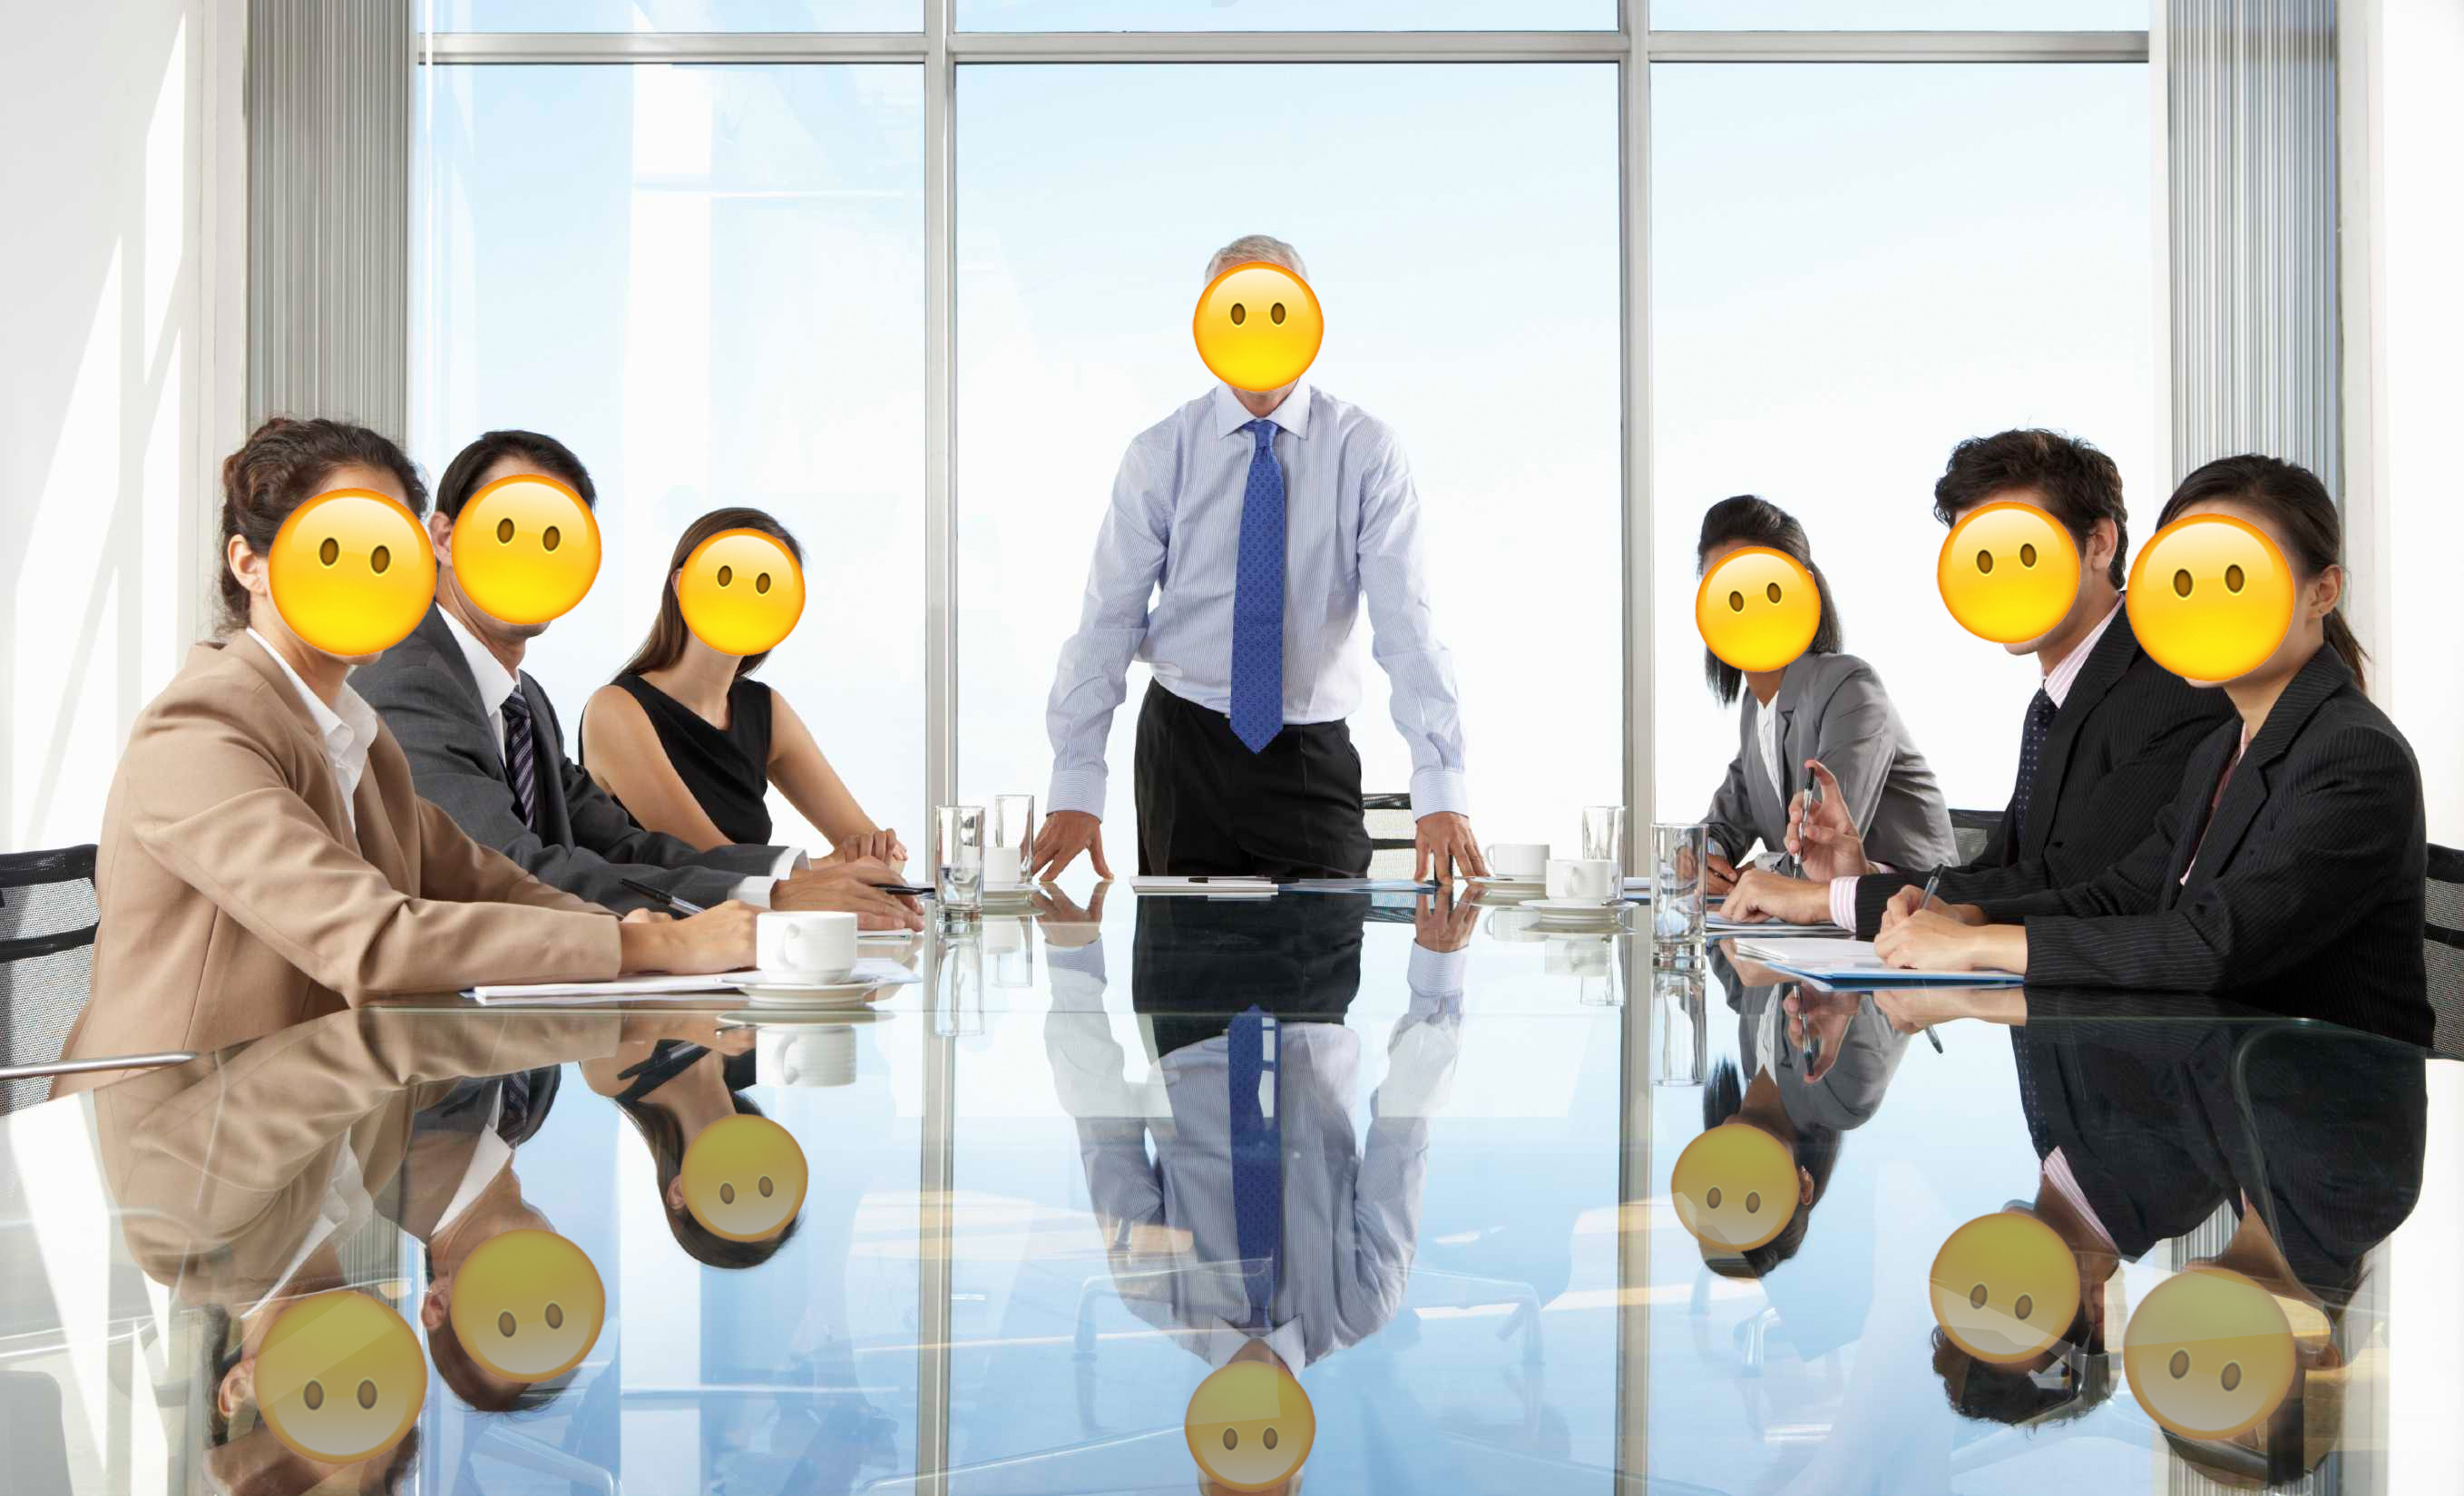 A meeting of executives with no expression emoji faces